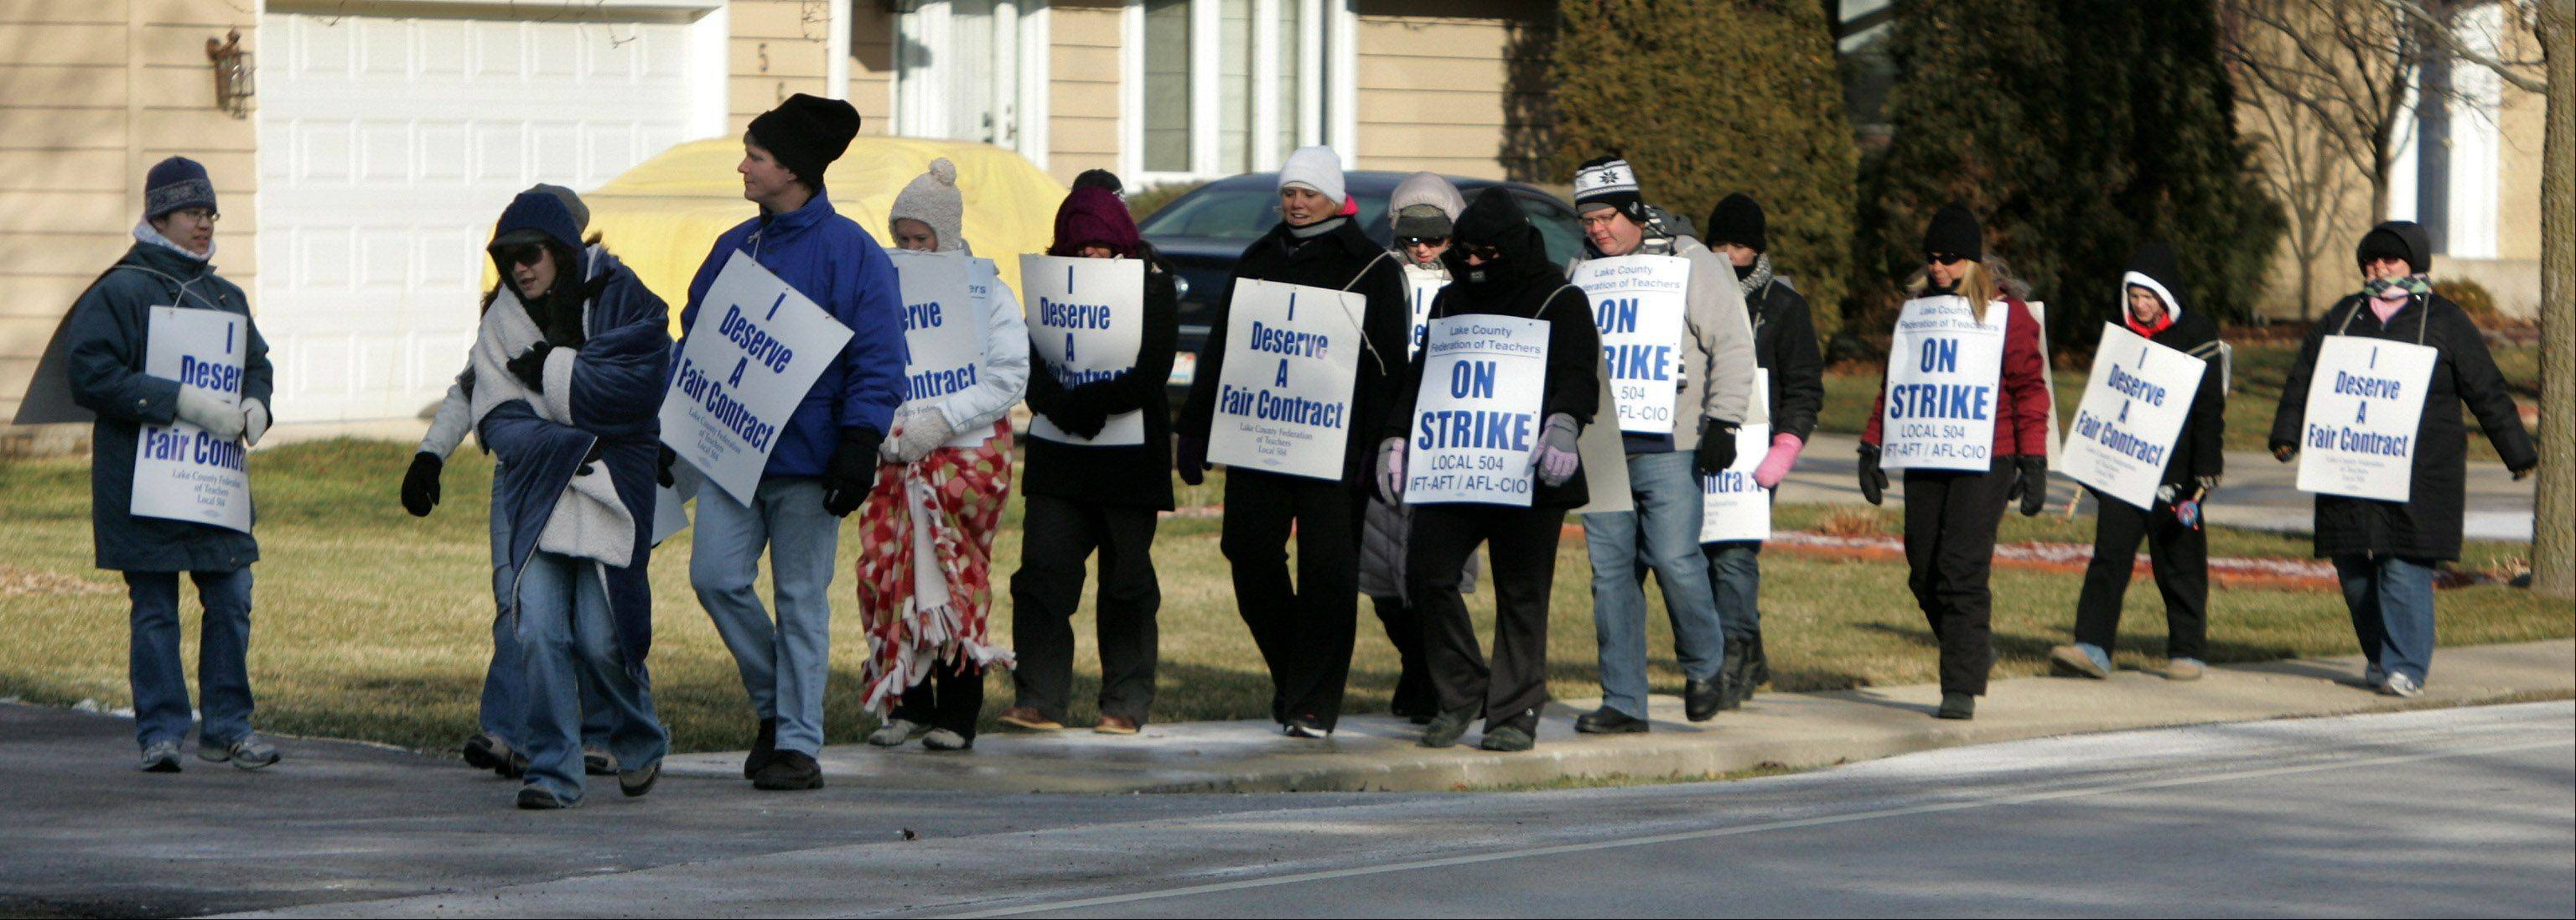 Teachers walk the picket line in the cold Wednesday outside Grayslake Middle School. The walkout affects some 325 teachers and 4,000 students at seven Grayslake Elementary District 46 schools.